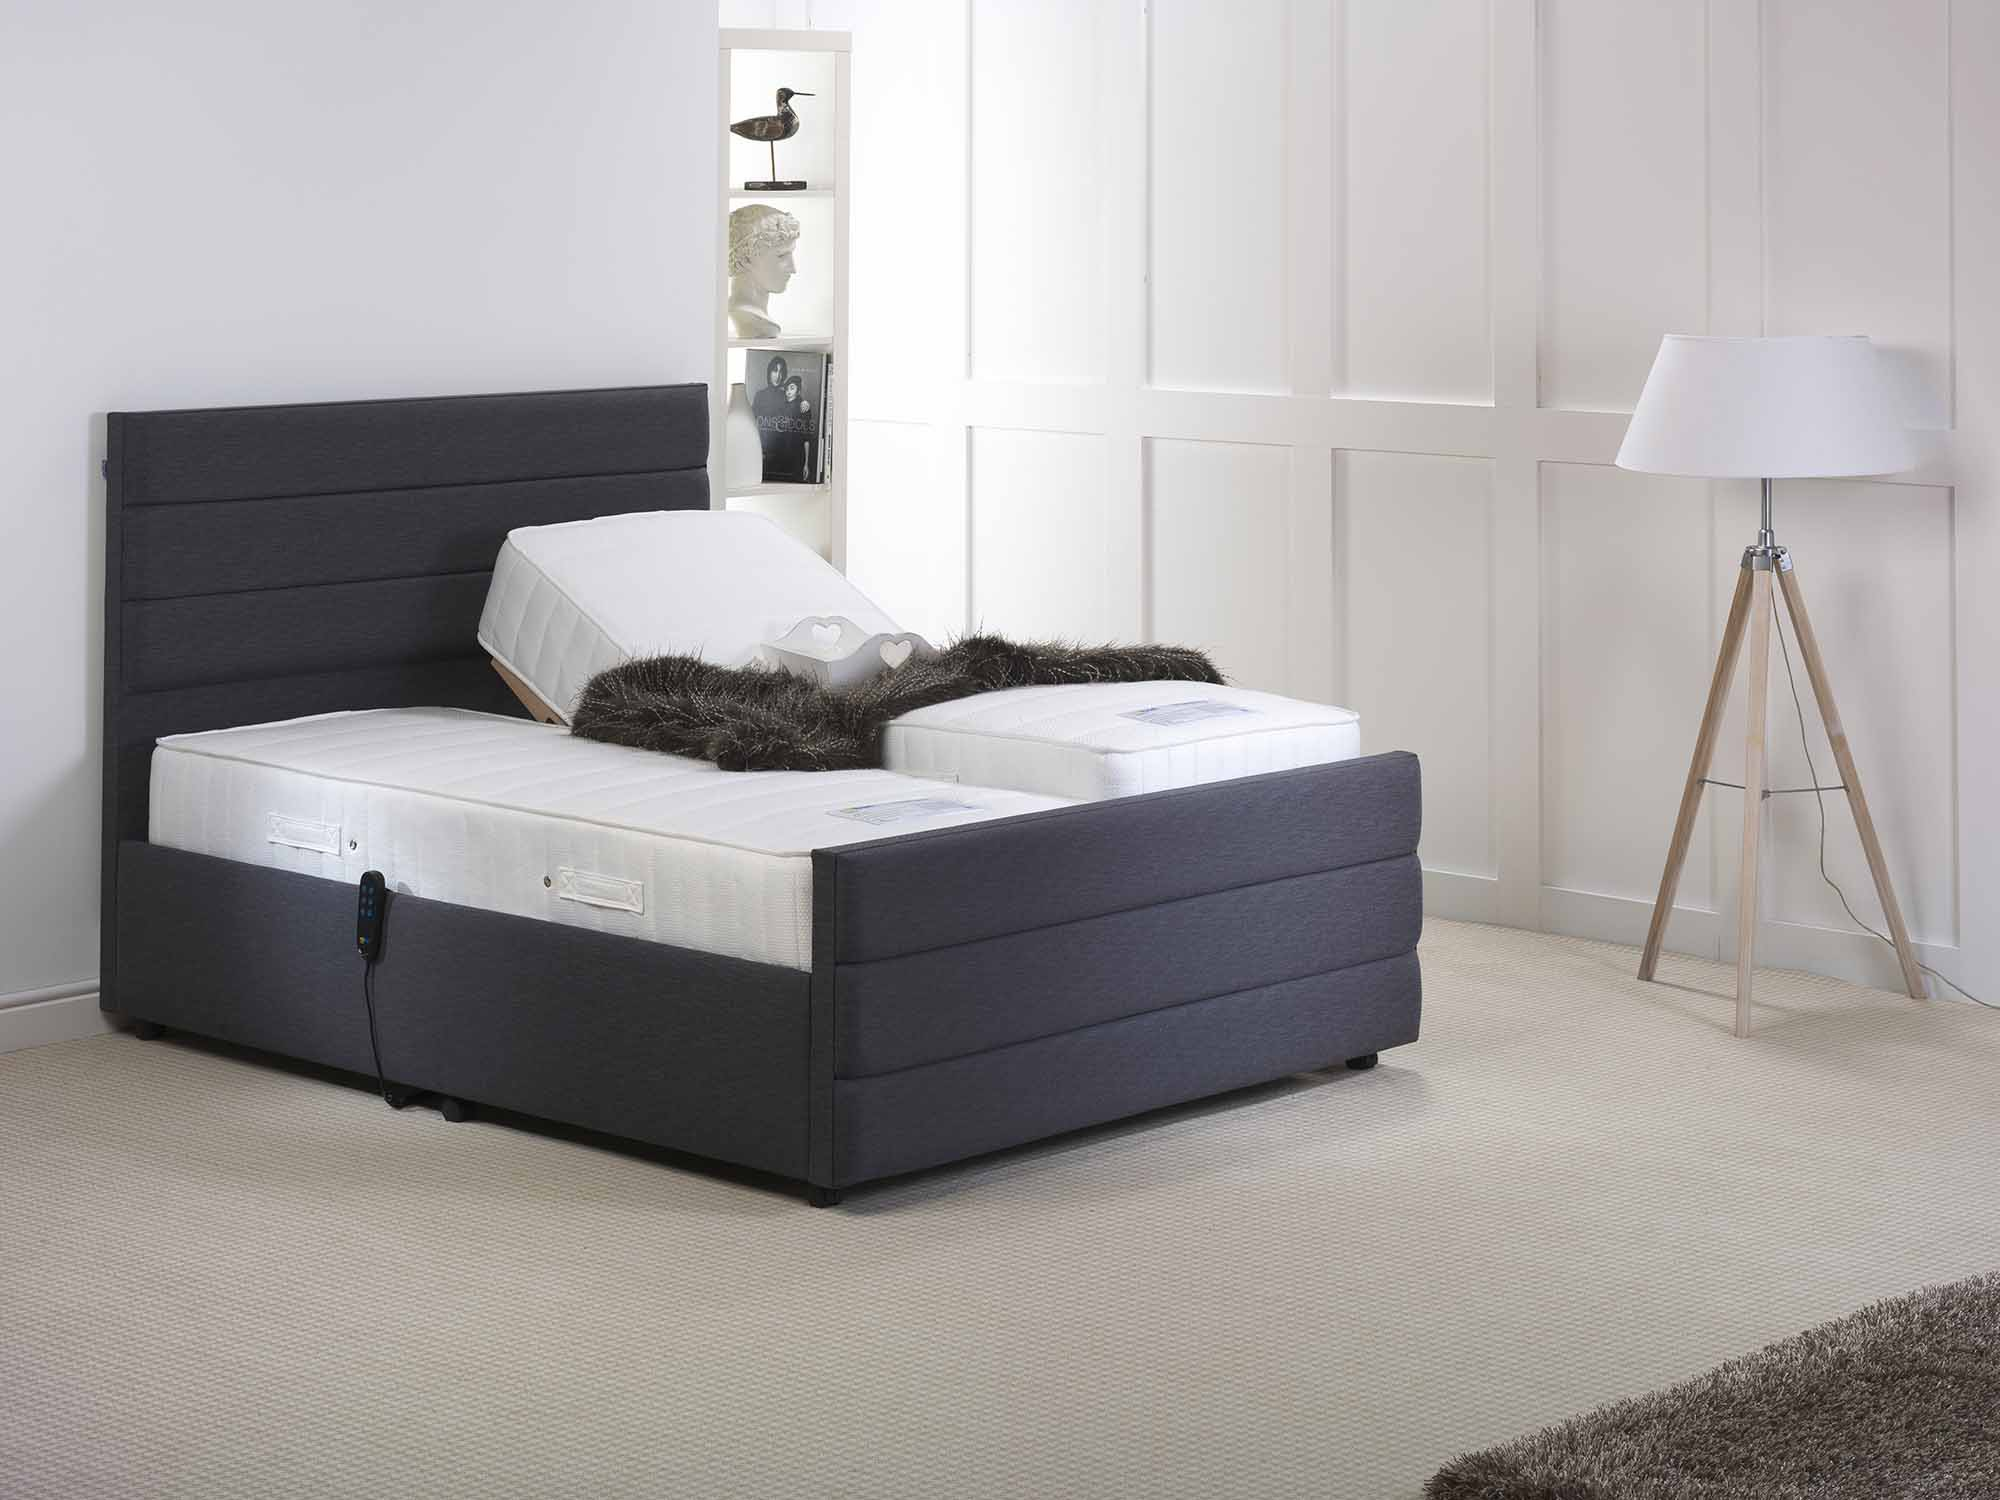 Electric Beds Ni : Mibed orpington electric adjustable bed surround